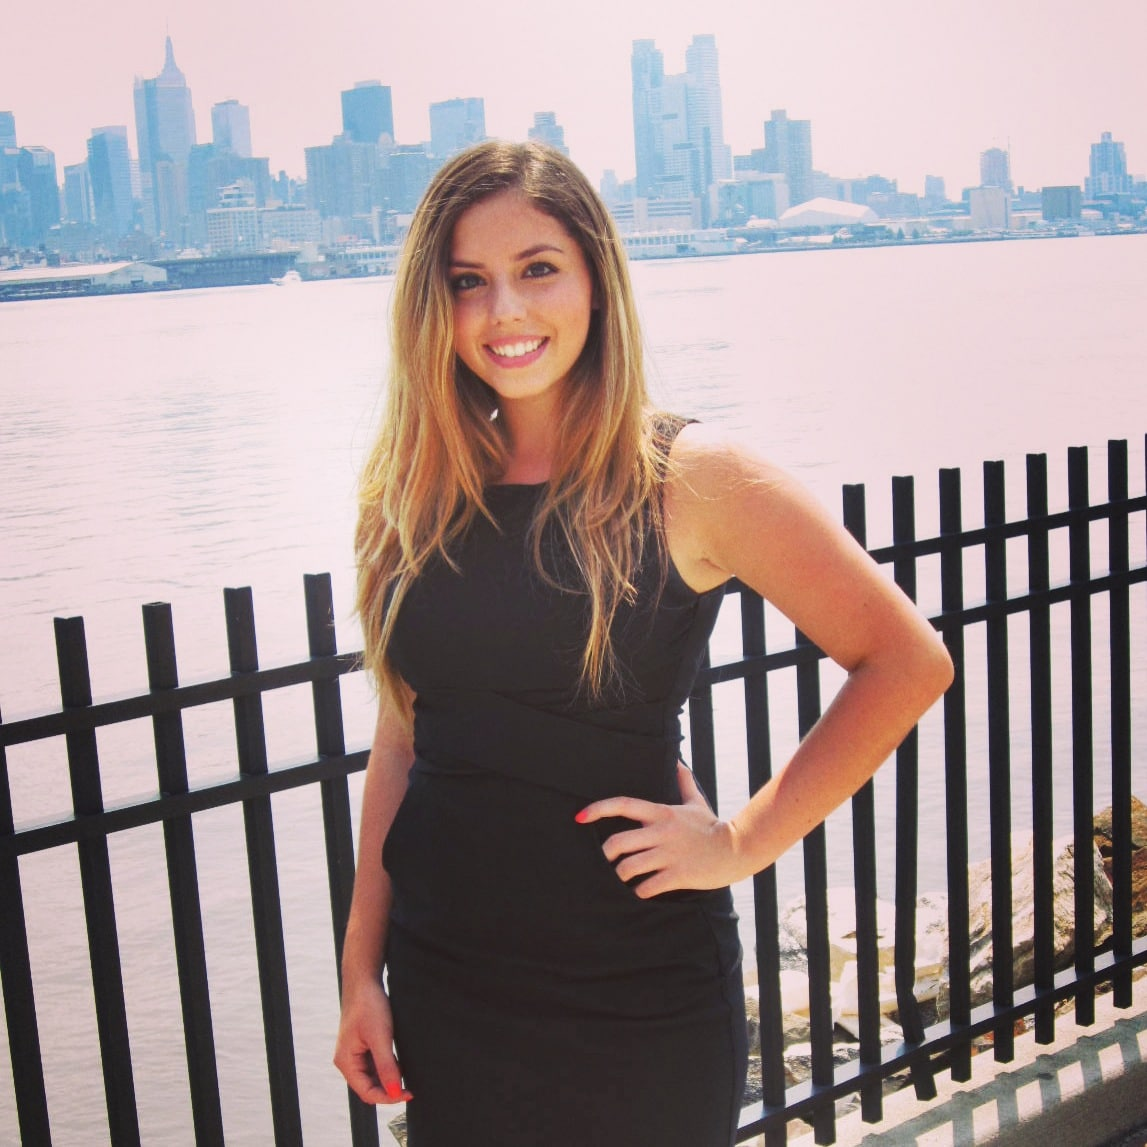 Andrea from Weehawken